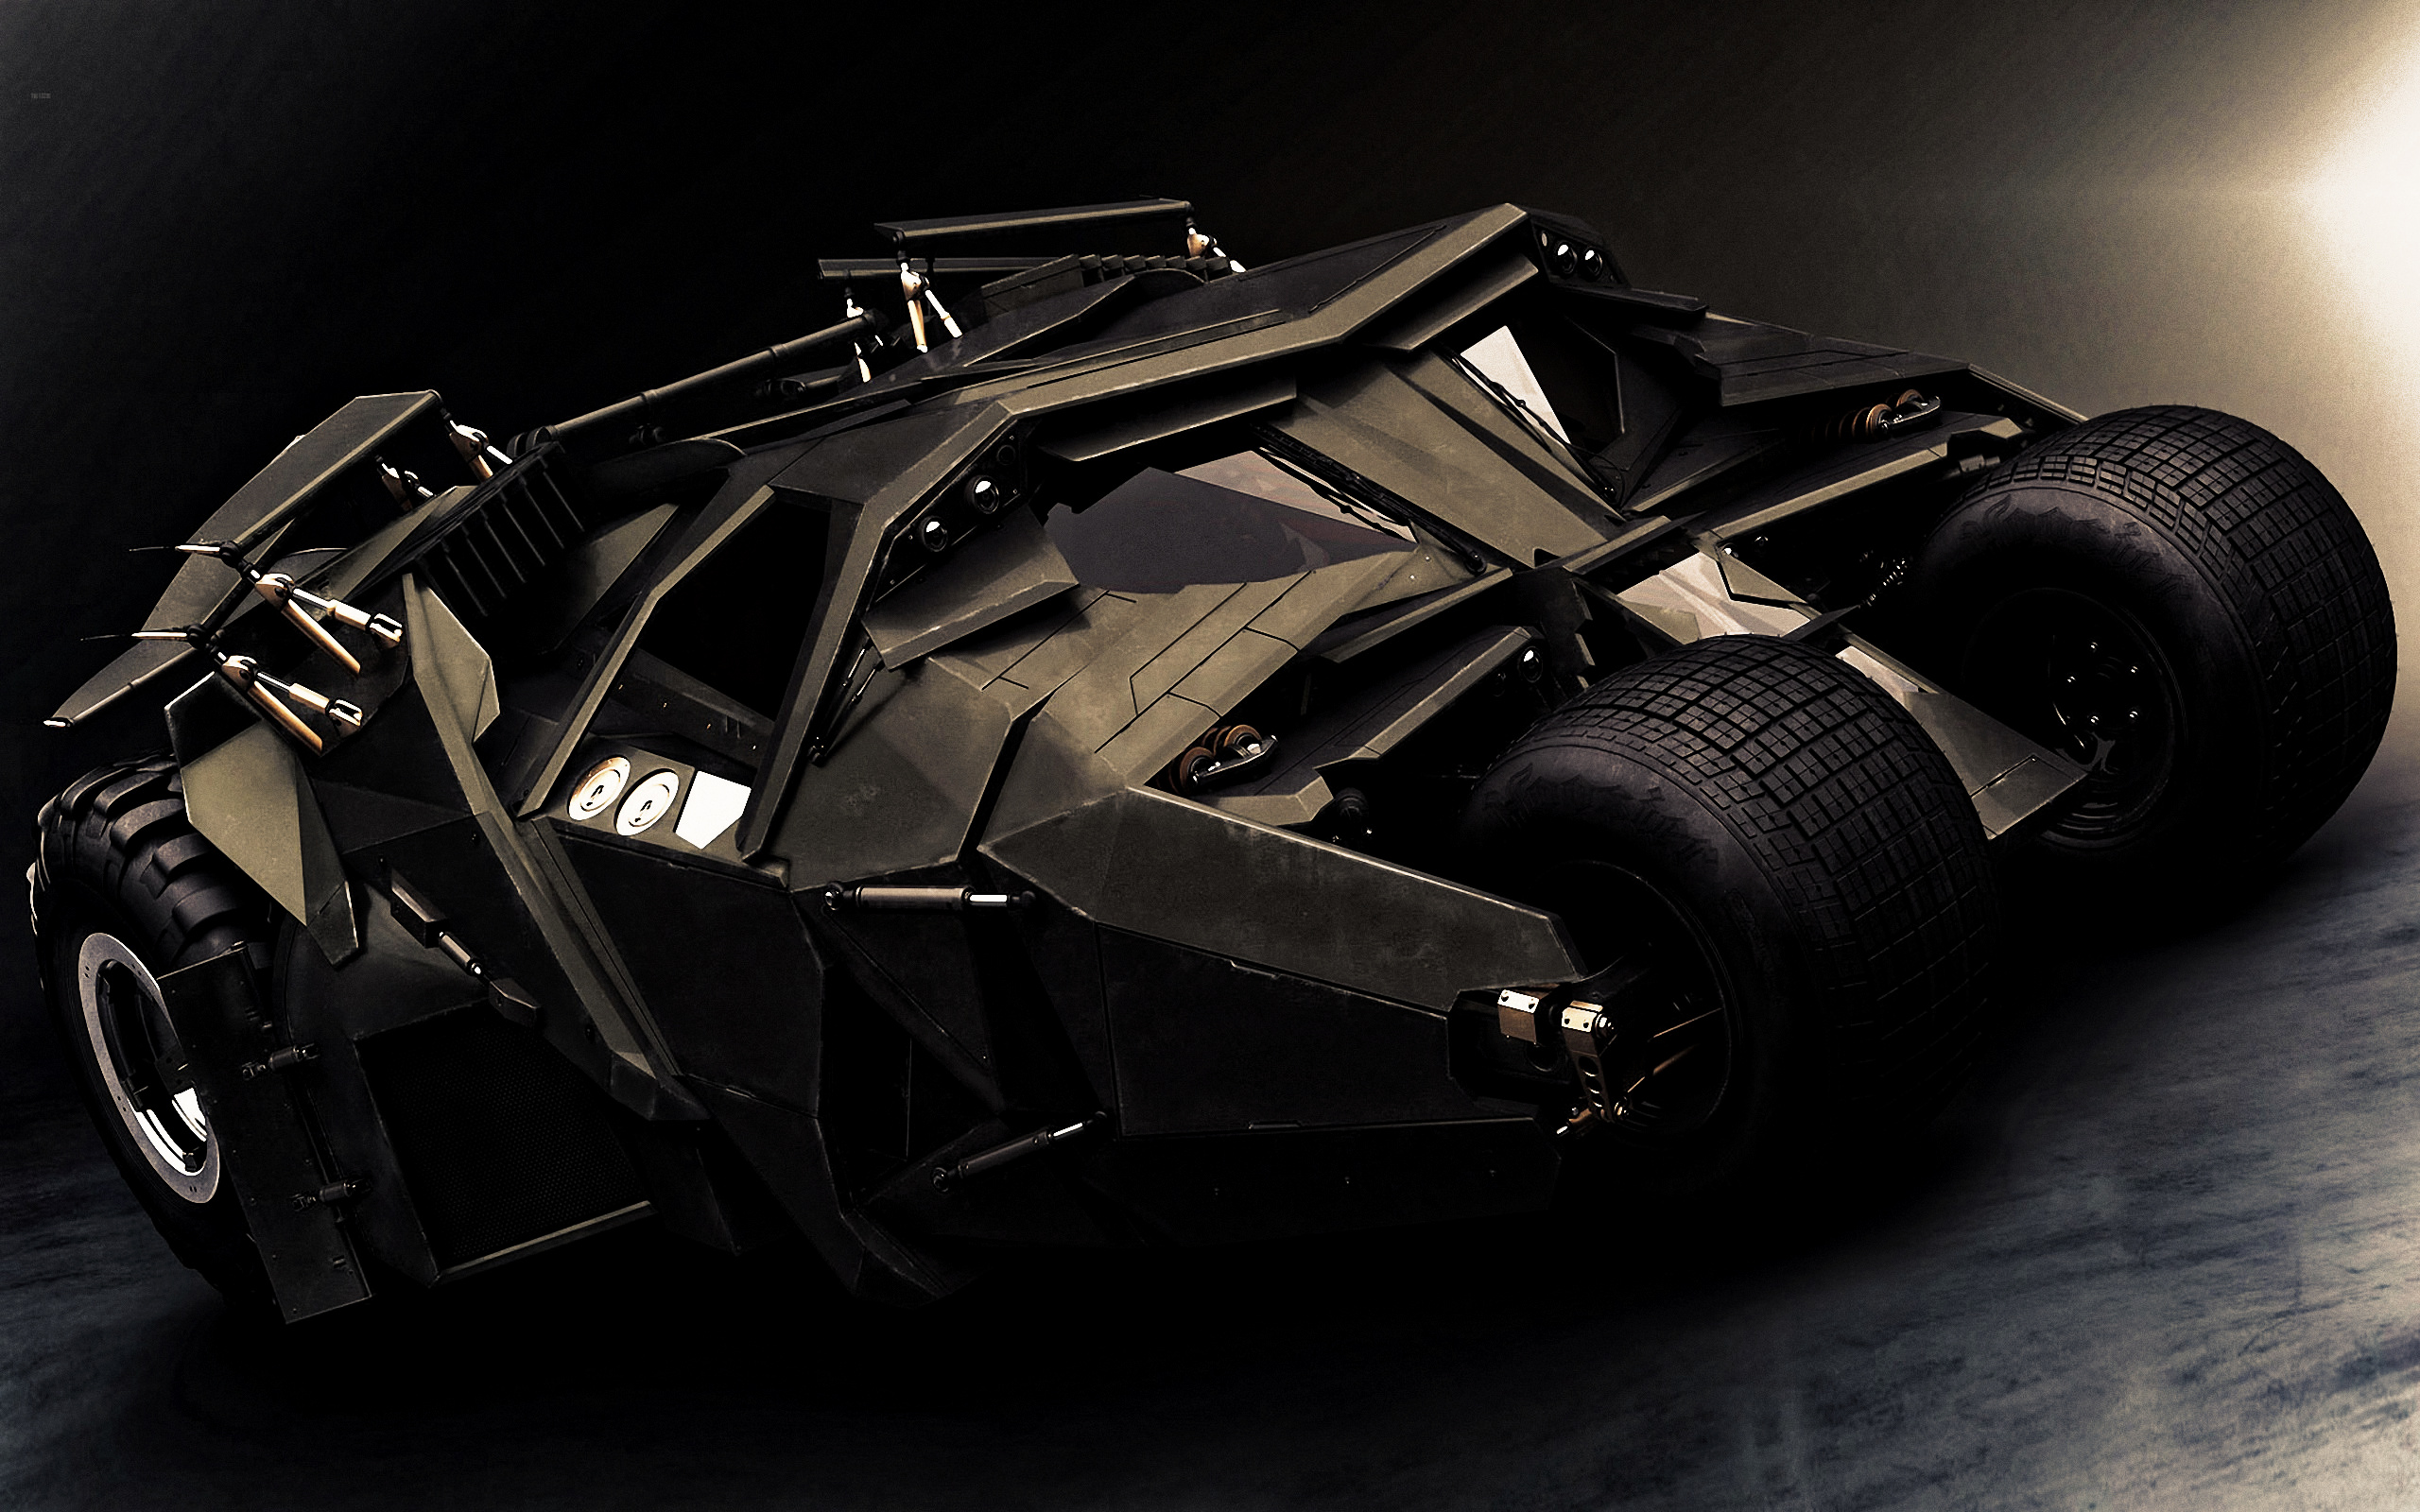 Bat Car Full HD Wallpaper and Background Image | 2560x1600 | ID:654214